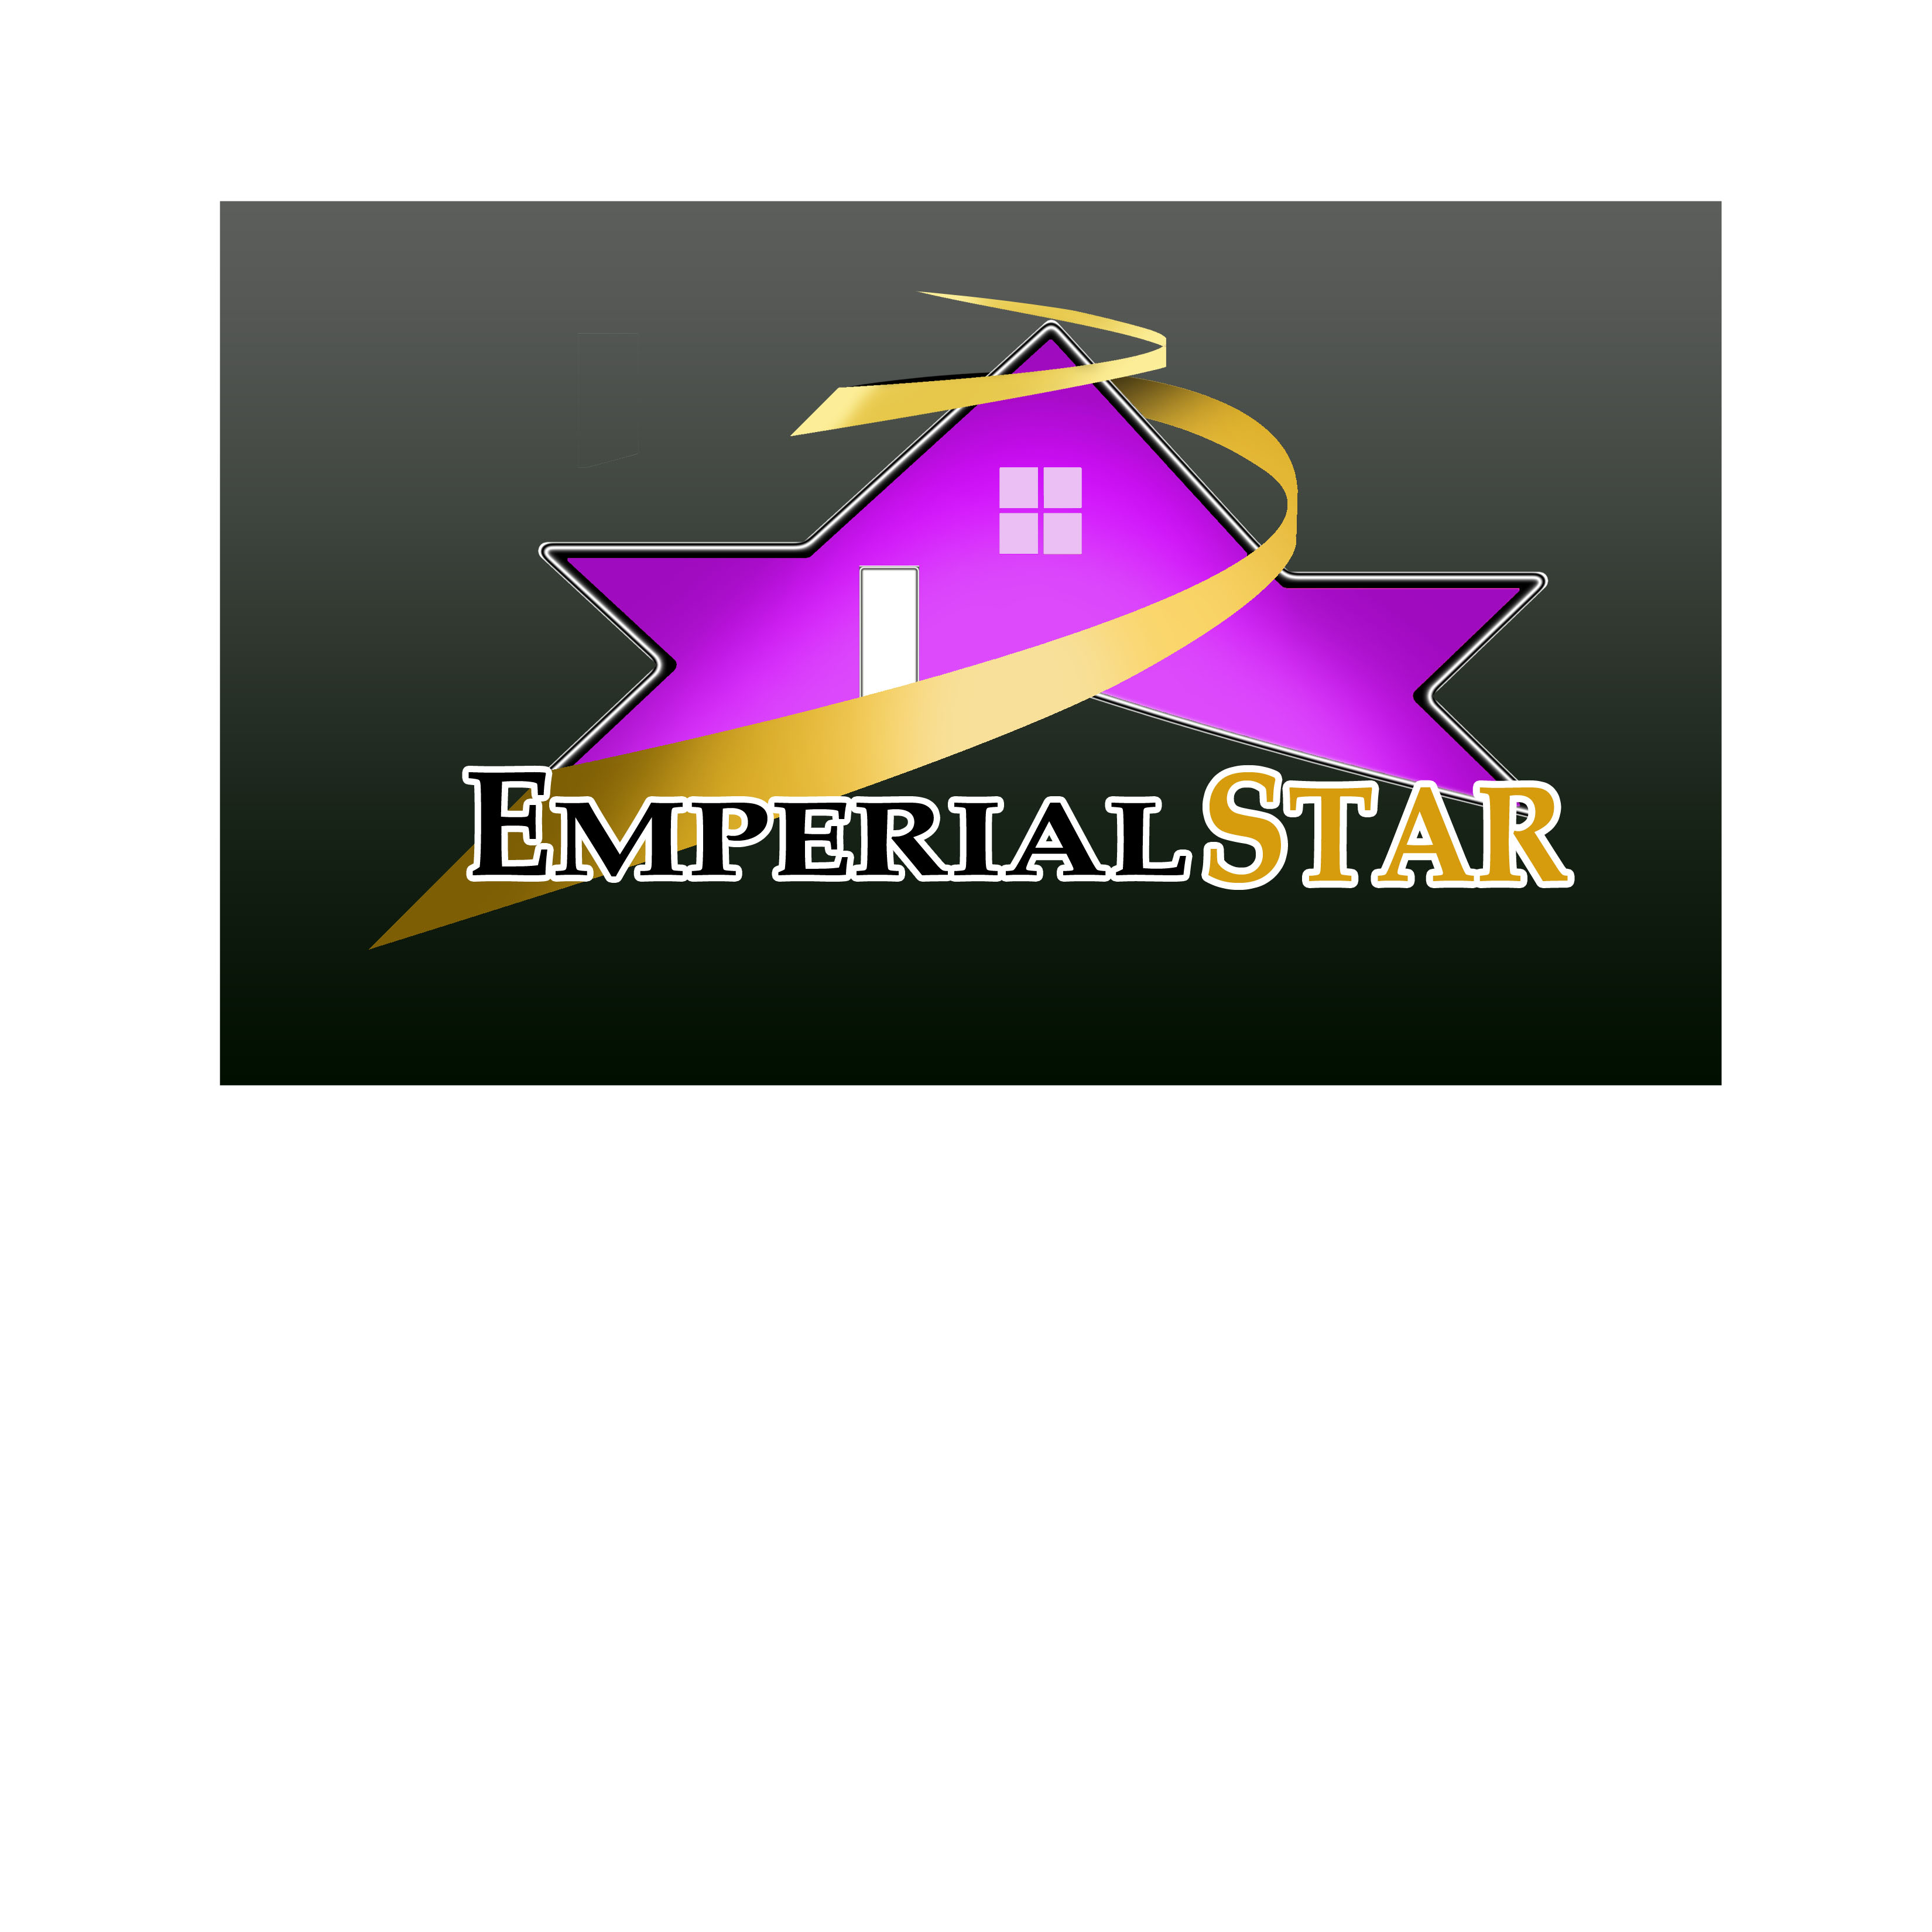 Logo Design by Allan Esclamado - Entry No. 162 in the Logo Design Contest Emperial Star Logo Design.